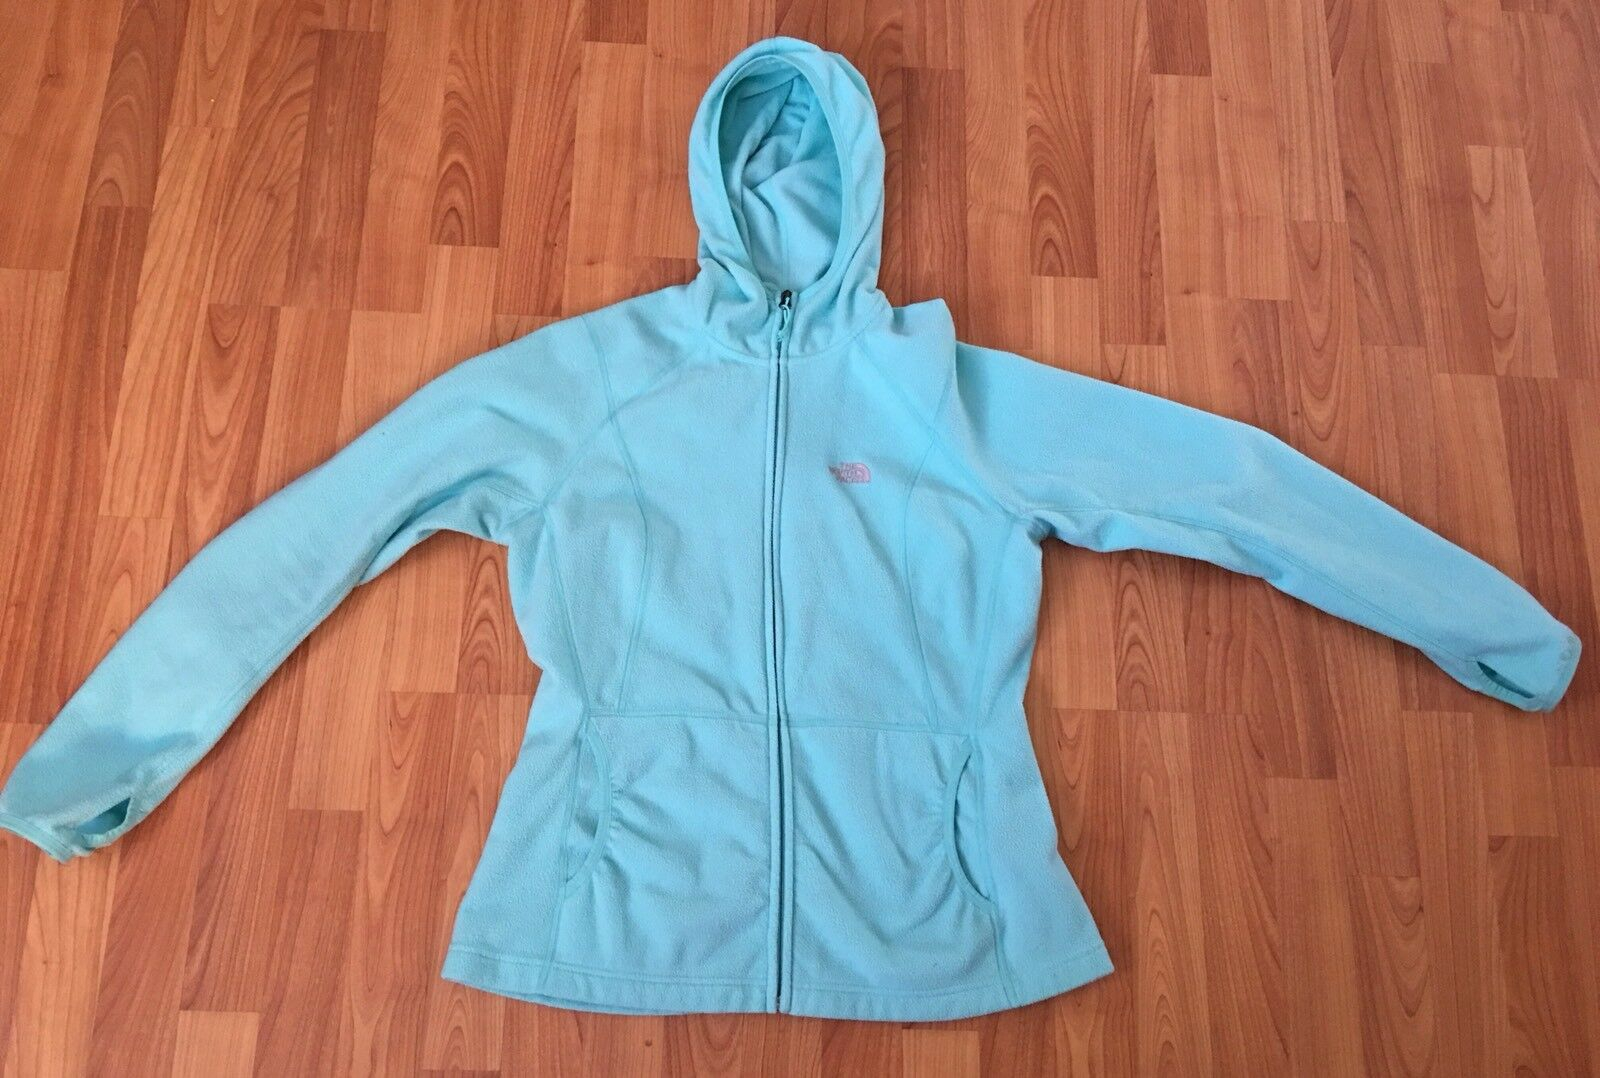 The The The North Face Womens Lightweight Fleece bluee Athletic Hooded Sweatshirt Large a1ba42